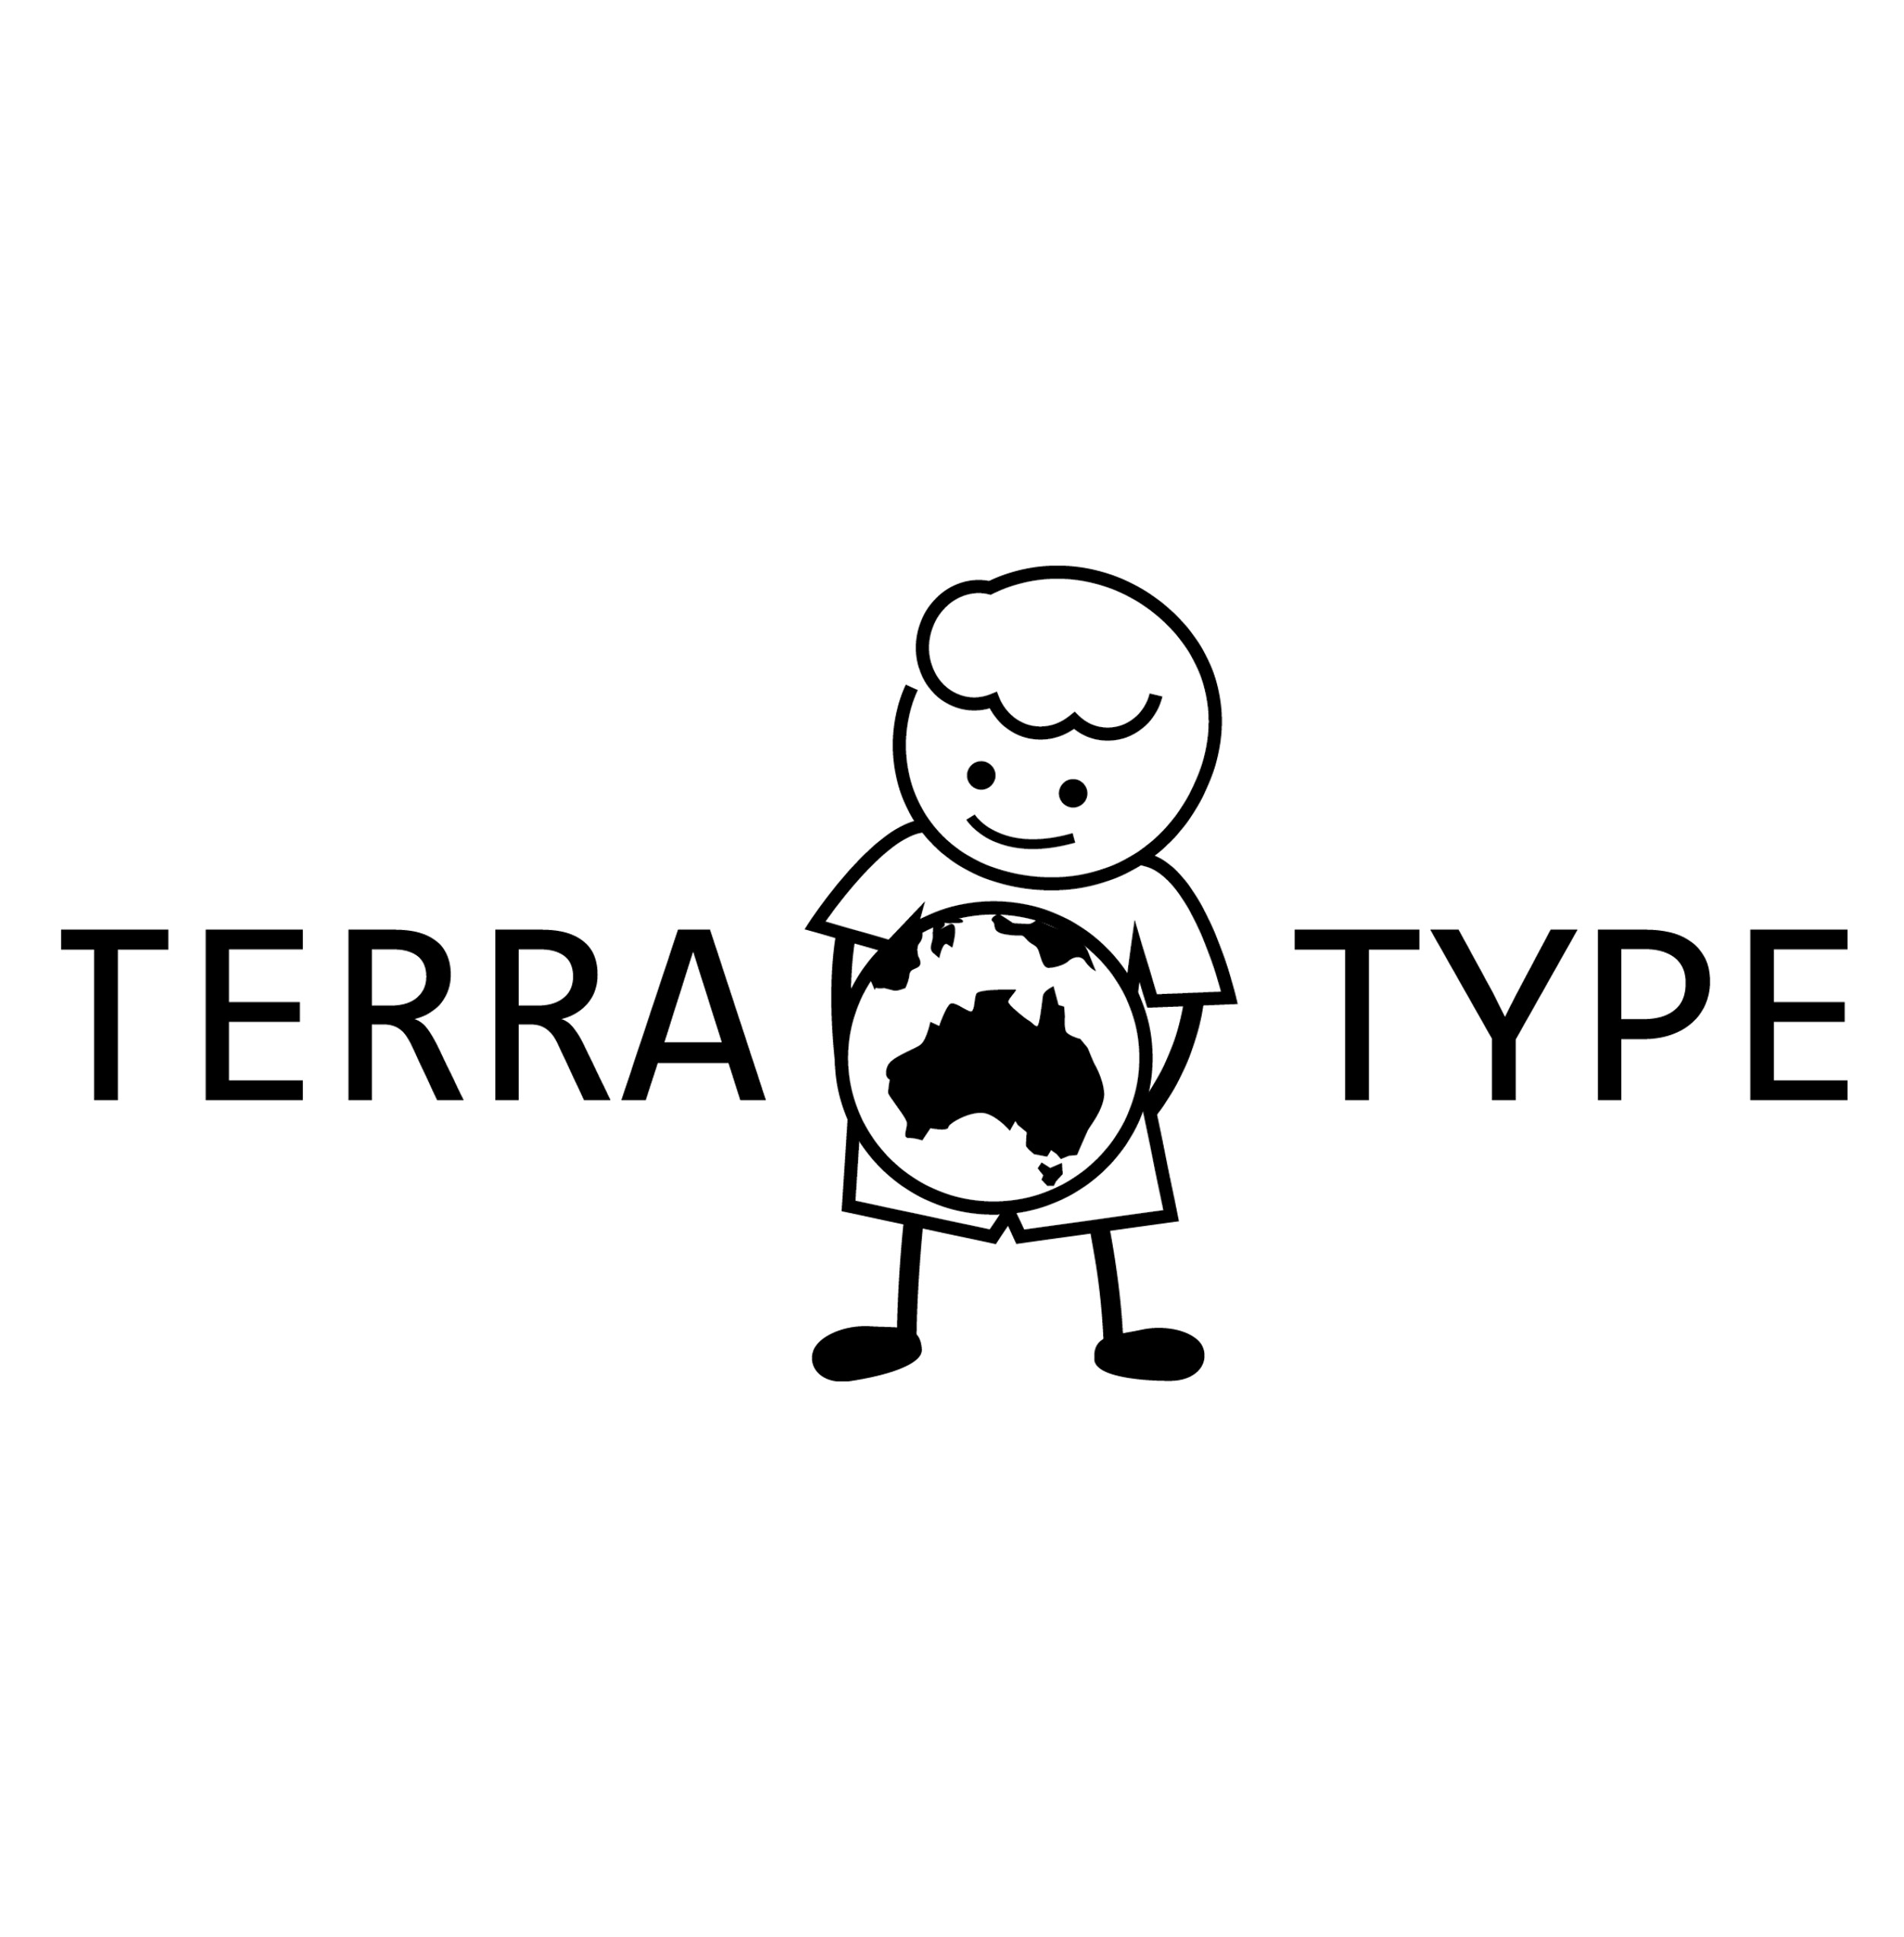 TerraType sqaure